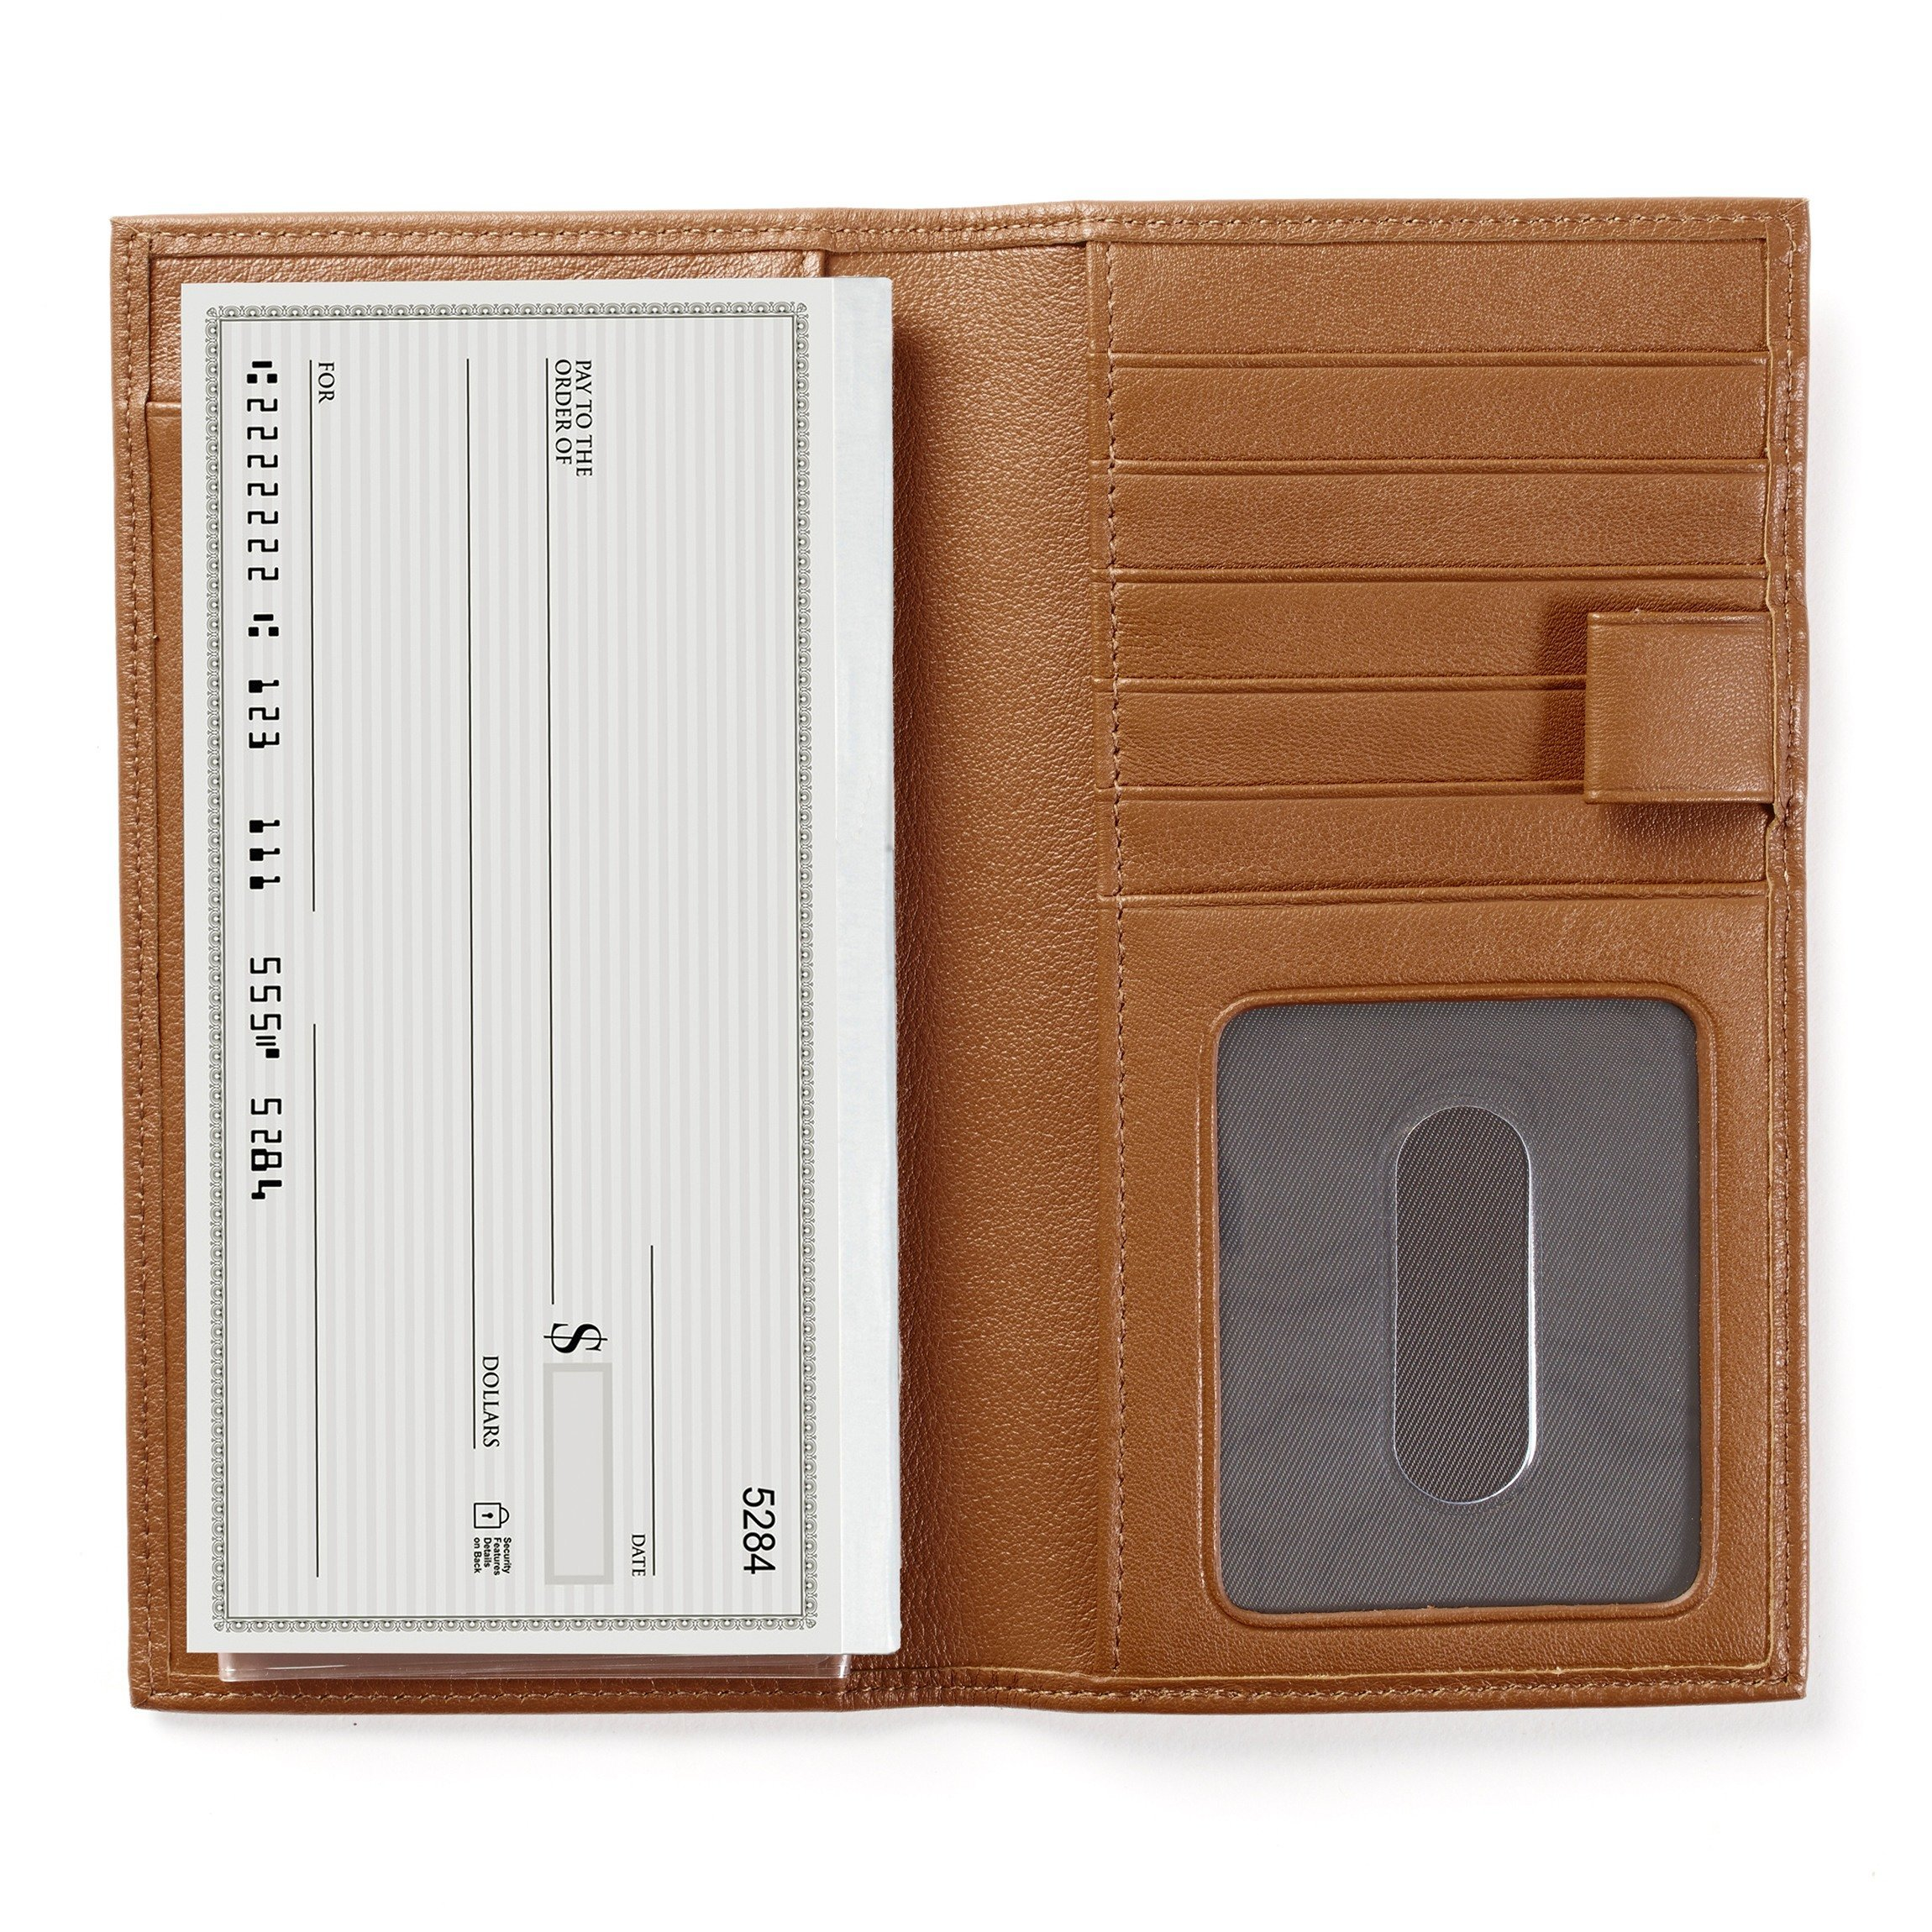 Leatherology Checkbook & Card Holder with Divider and Pen Loop - Full Grain Leather - Cognac (brown)